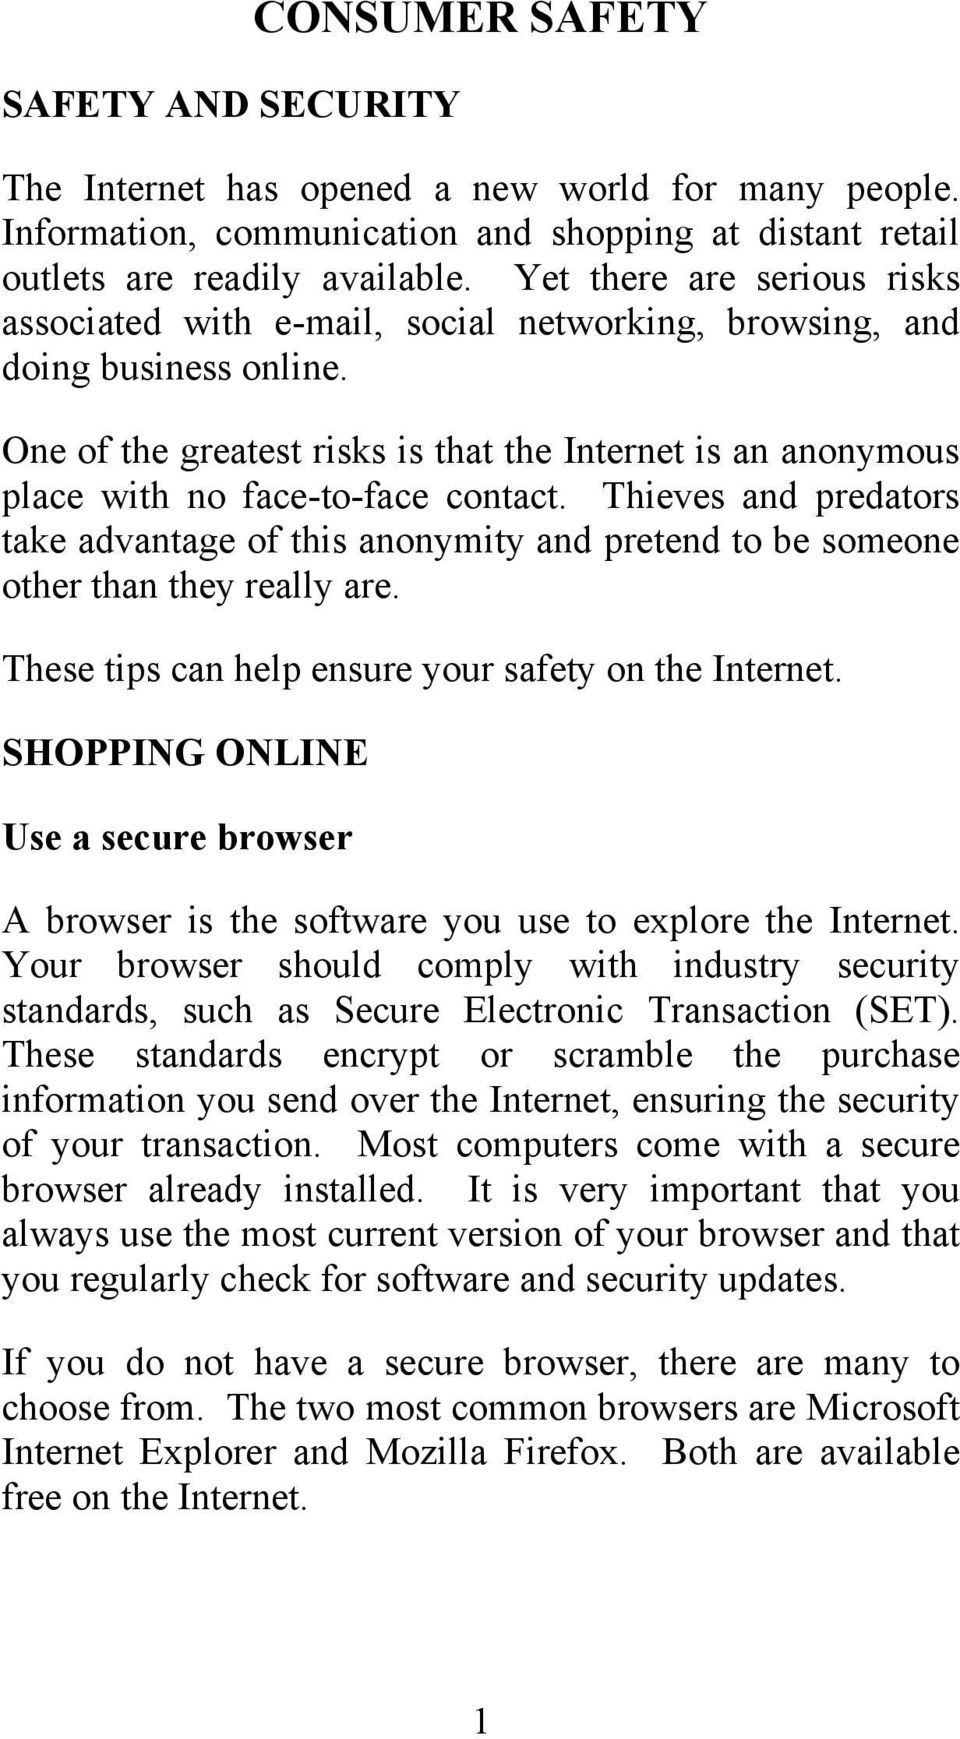 One of the greatest risks is that the Internet is an anonymous place with no face-to-face contact.